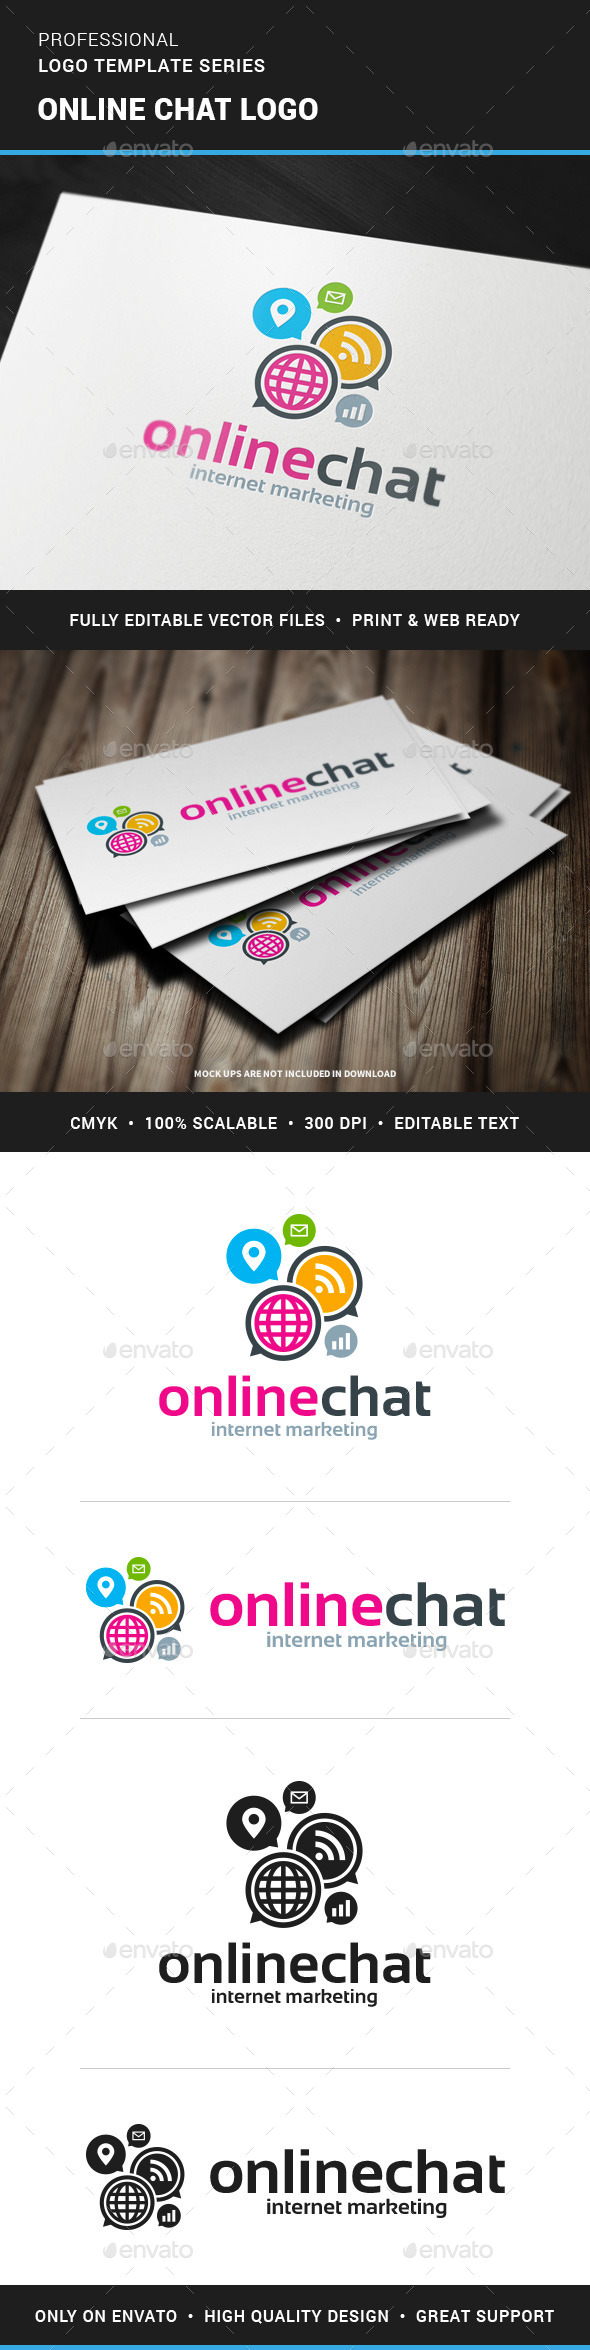 Online Chat Logo Template